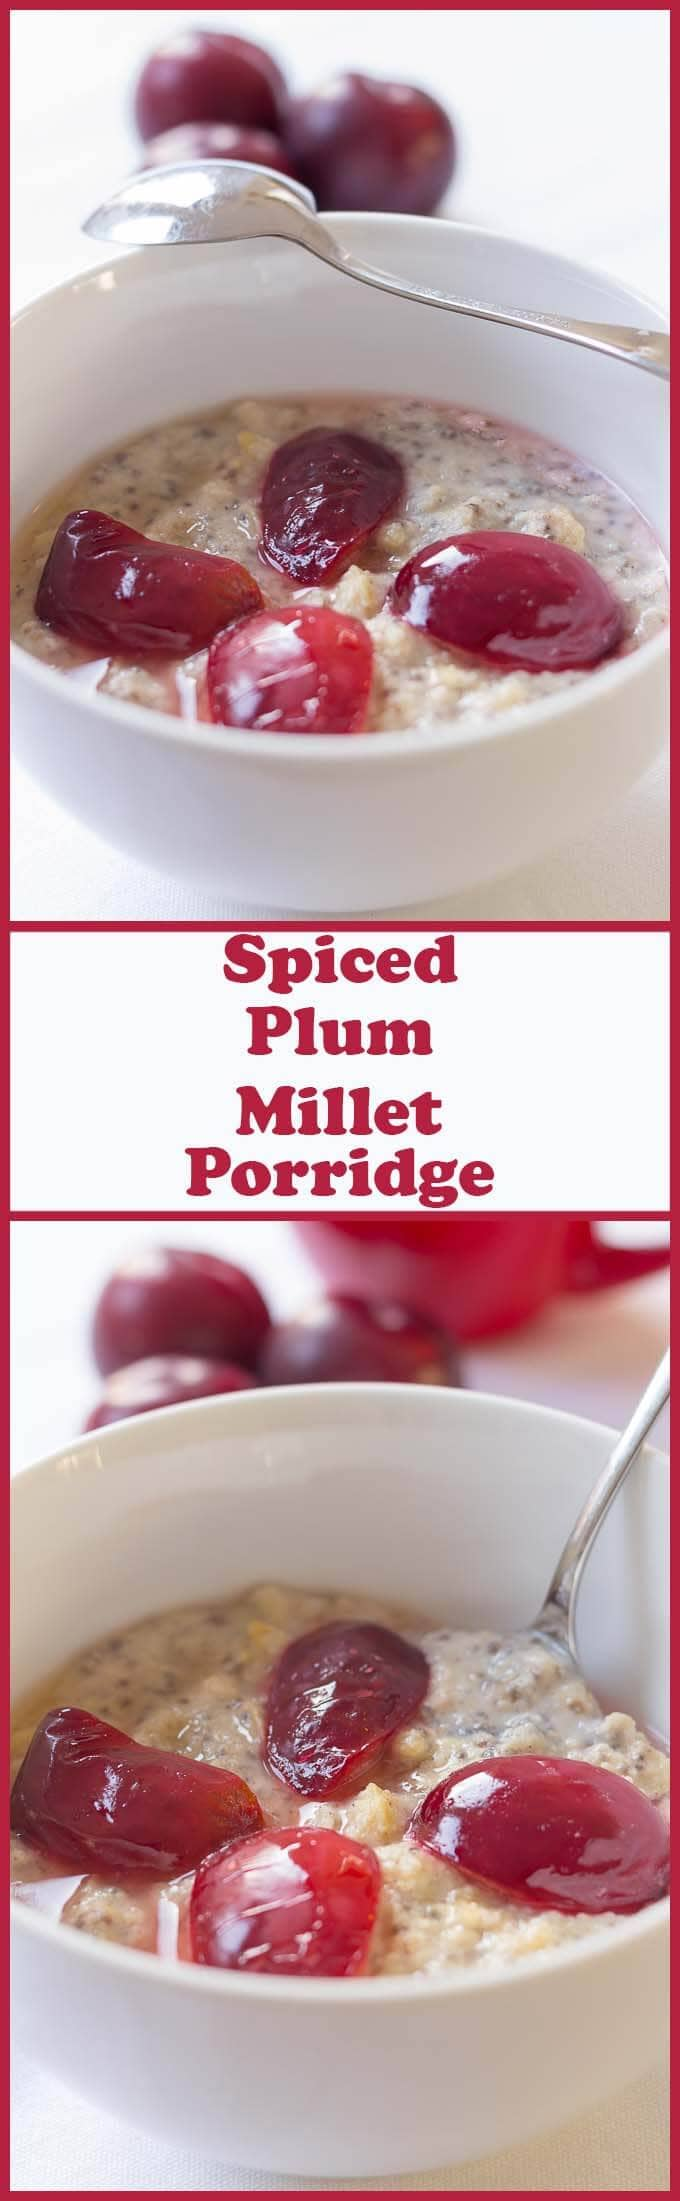 This gluten free spiced plum millet porridge is deliciously thick and creamy. It's slightly spiced and the plum adds a healthy natural sweetness to the taste. Wake up those taste buds with this superb alternative porridge breakfast.